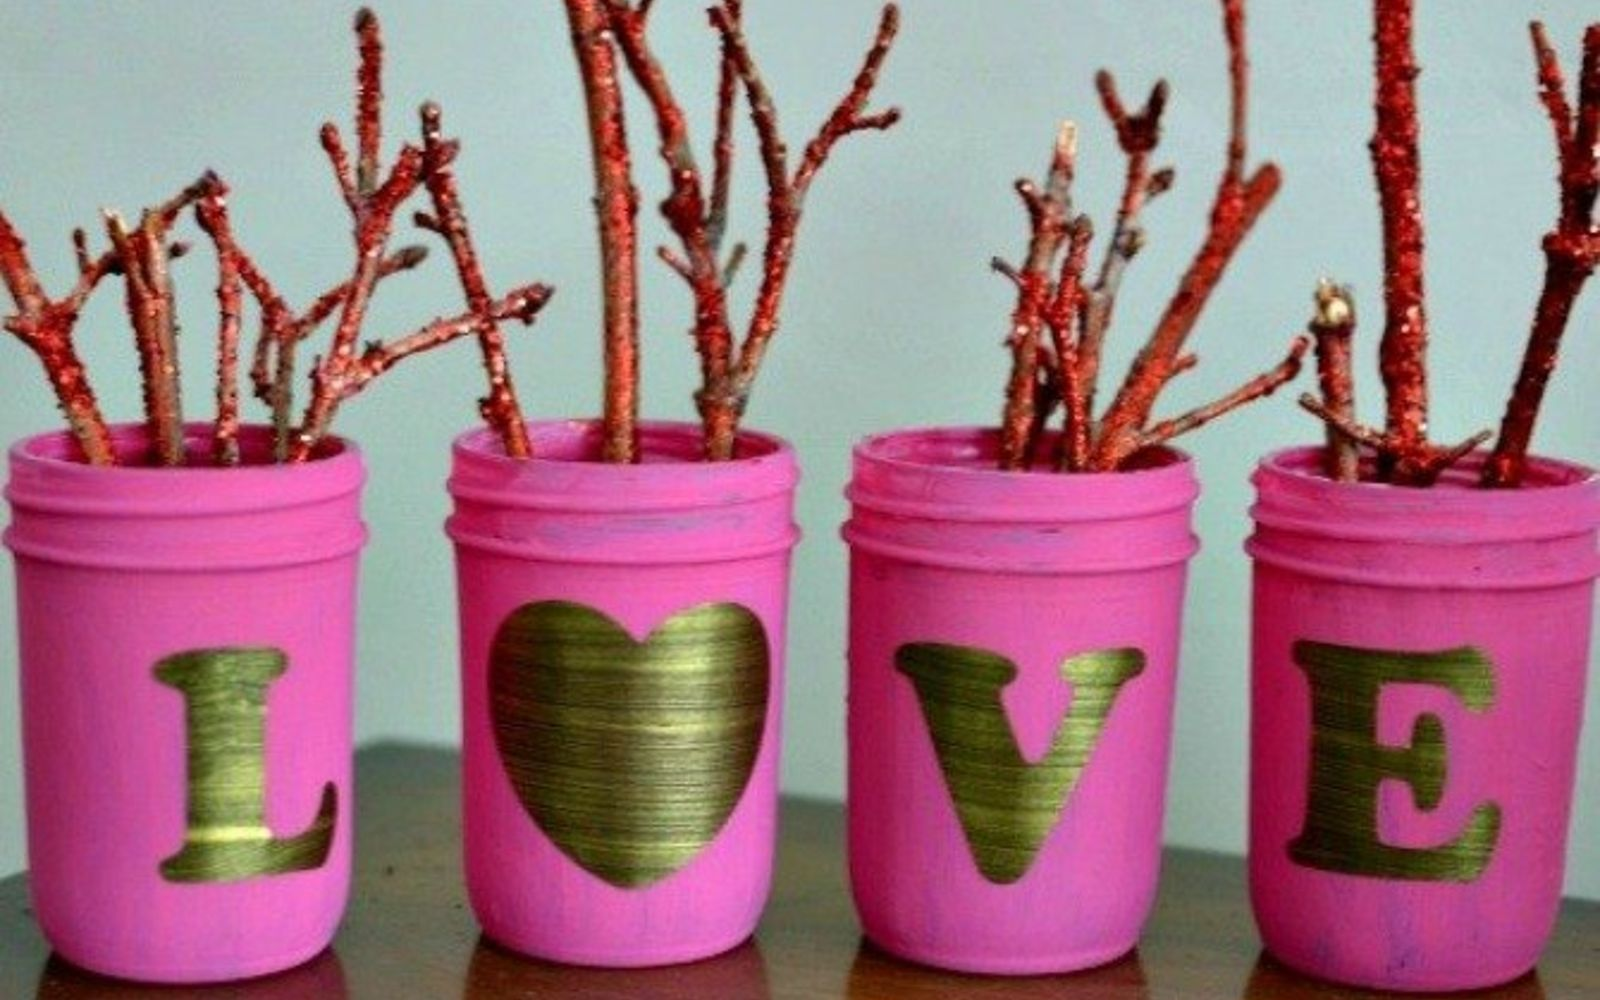 s how 13 dumpster divers decorate for valentine s day, repurposing upcycling, seasonal holiday decor, valentines day ideas, Valentine s Day Display from Extra Mason Jars